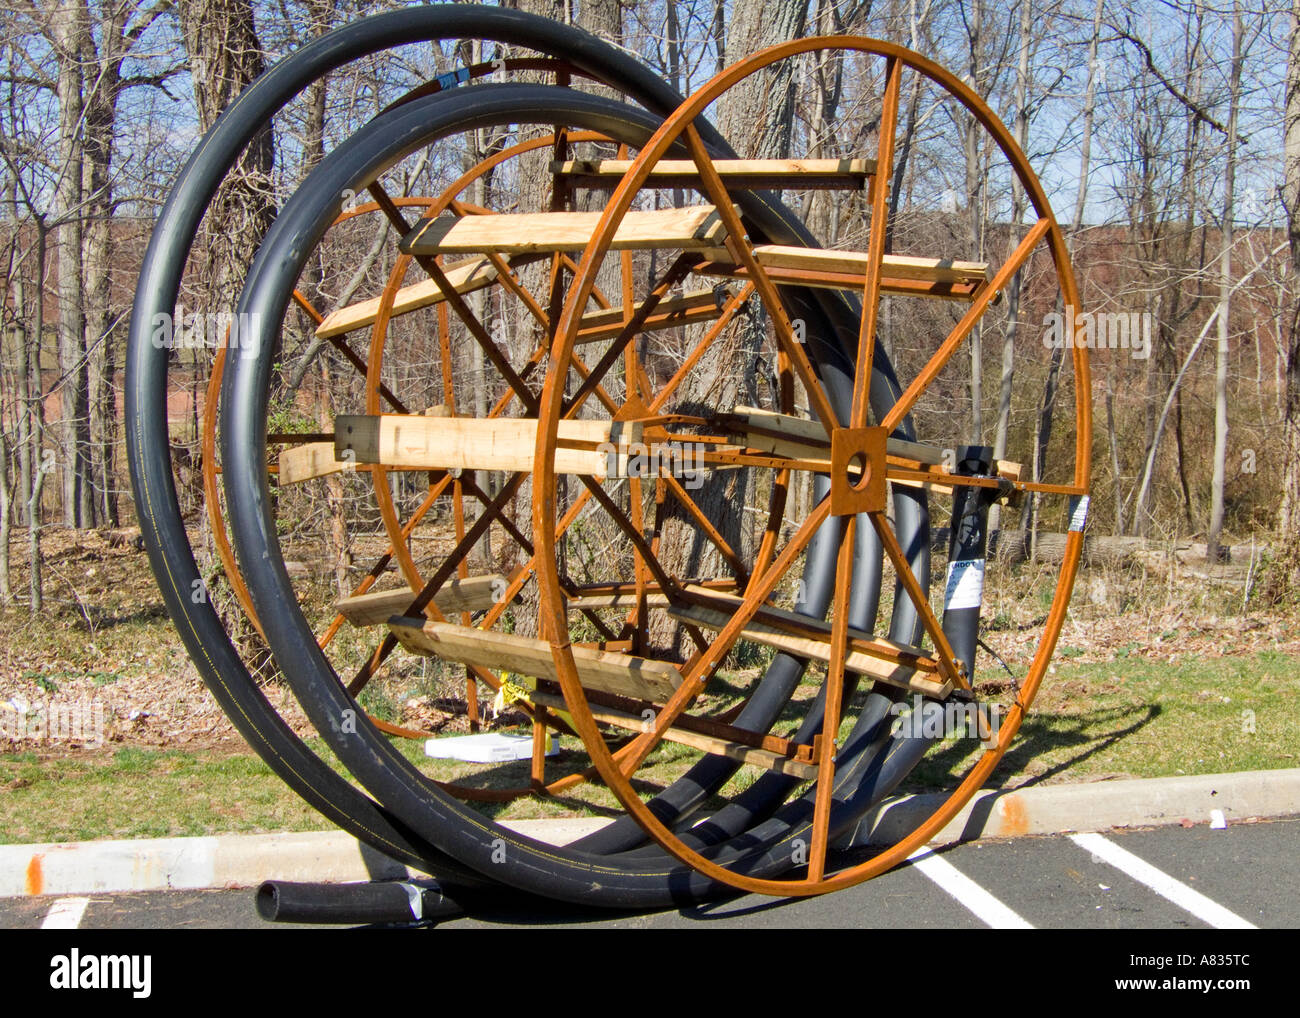 Spools for large gauge wire Stock Photo: 6841163 - Alamy